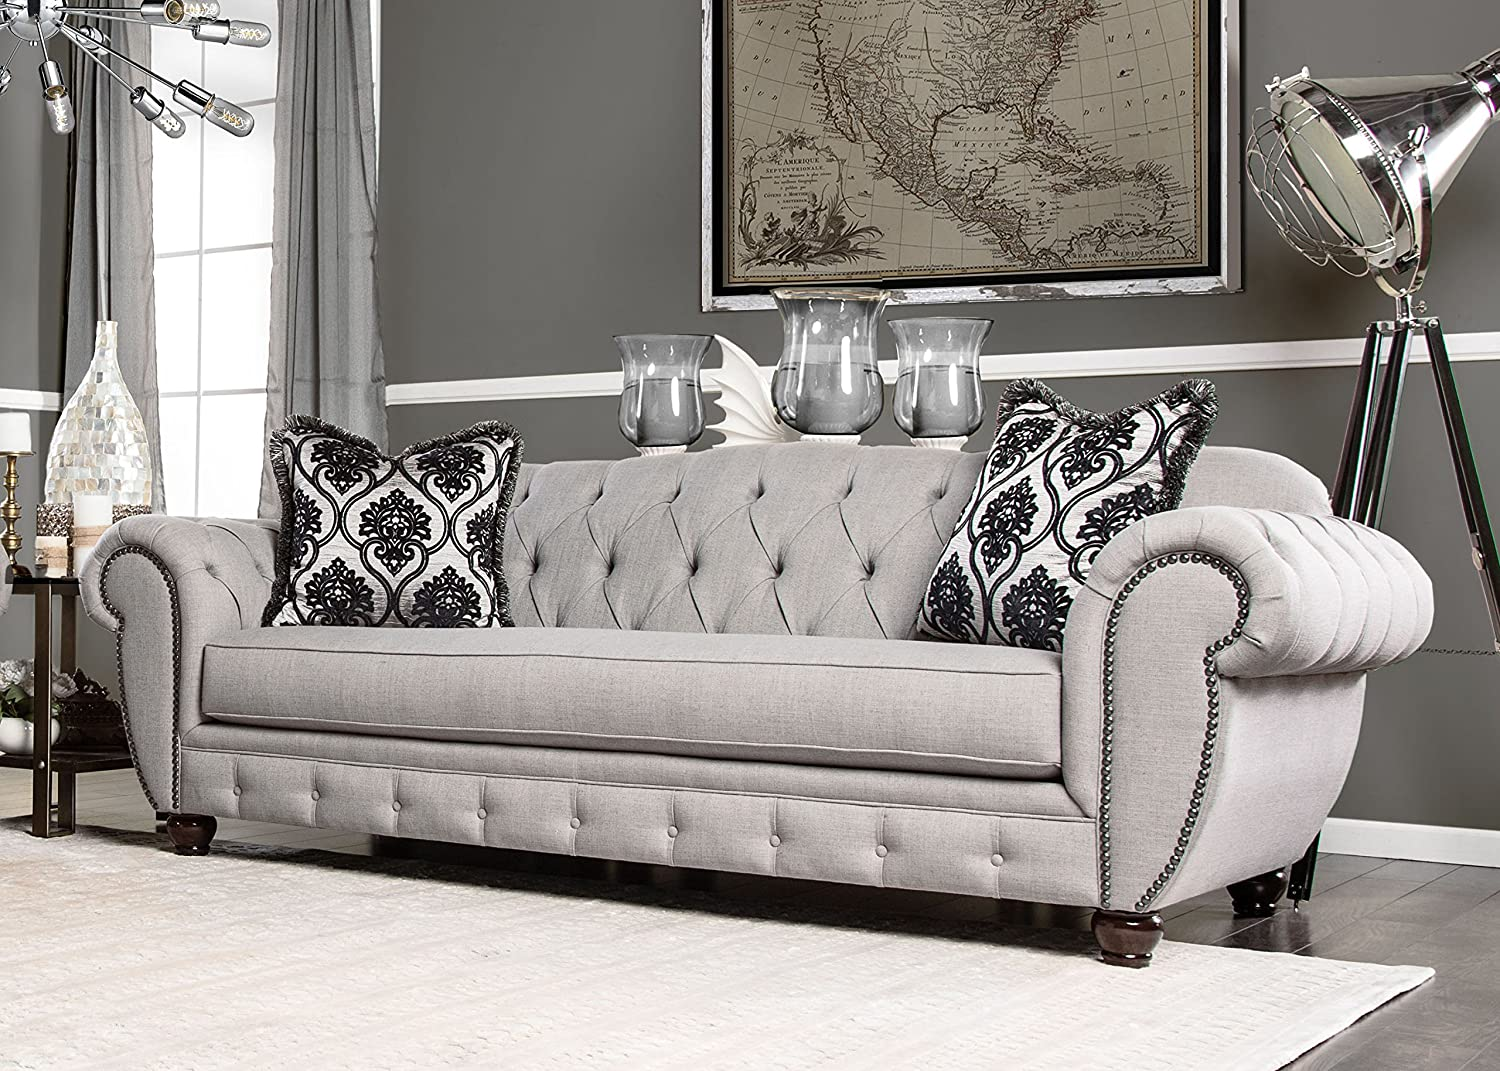 amazon com furniture of america bowie modern victorian tufted sofa rh amazon com modern victorian furniture styles modern victorian furniture stores